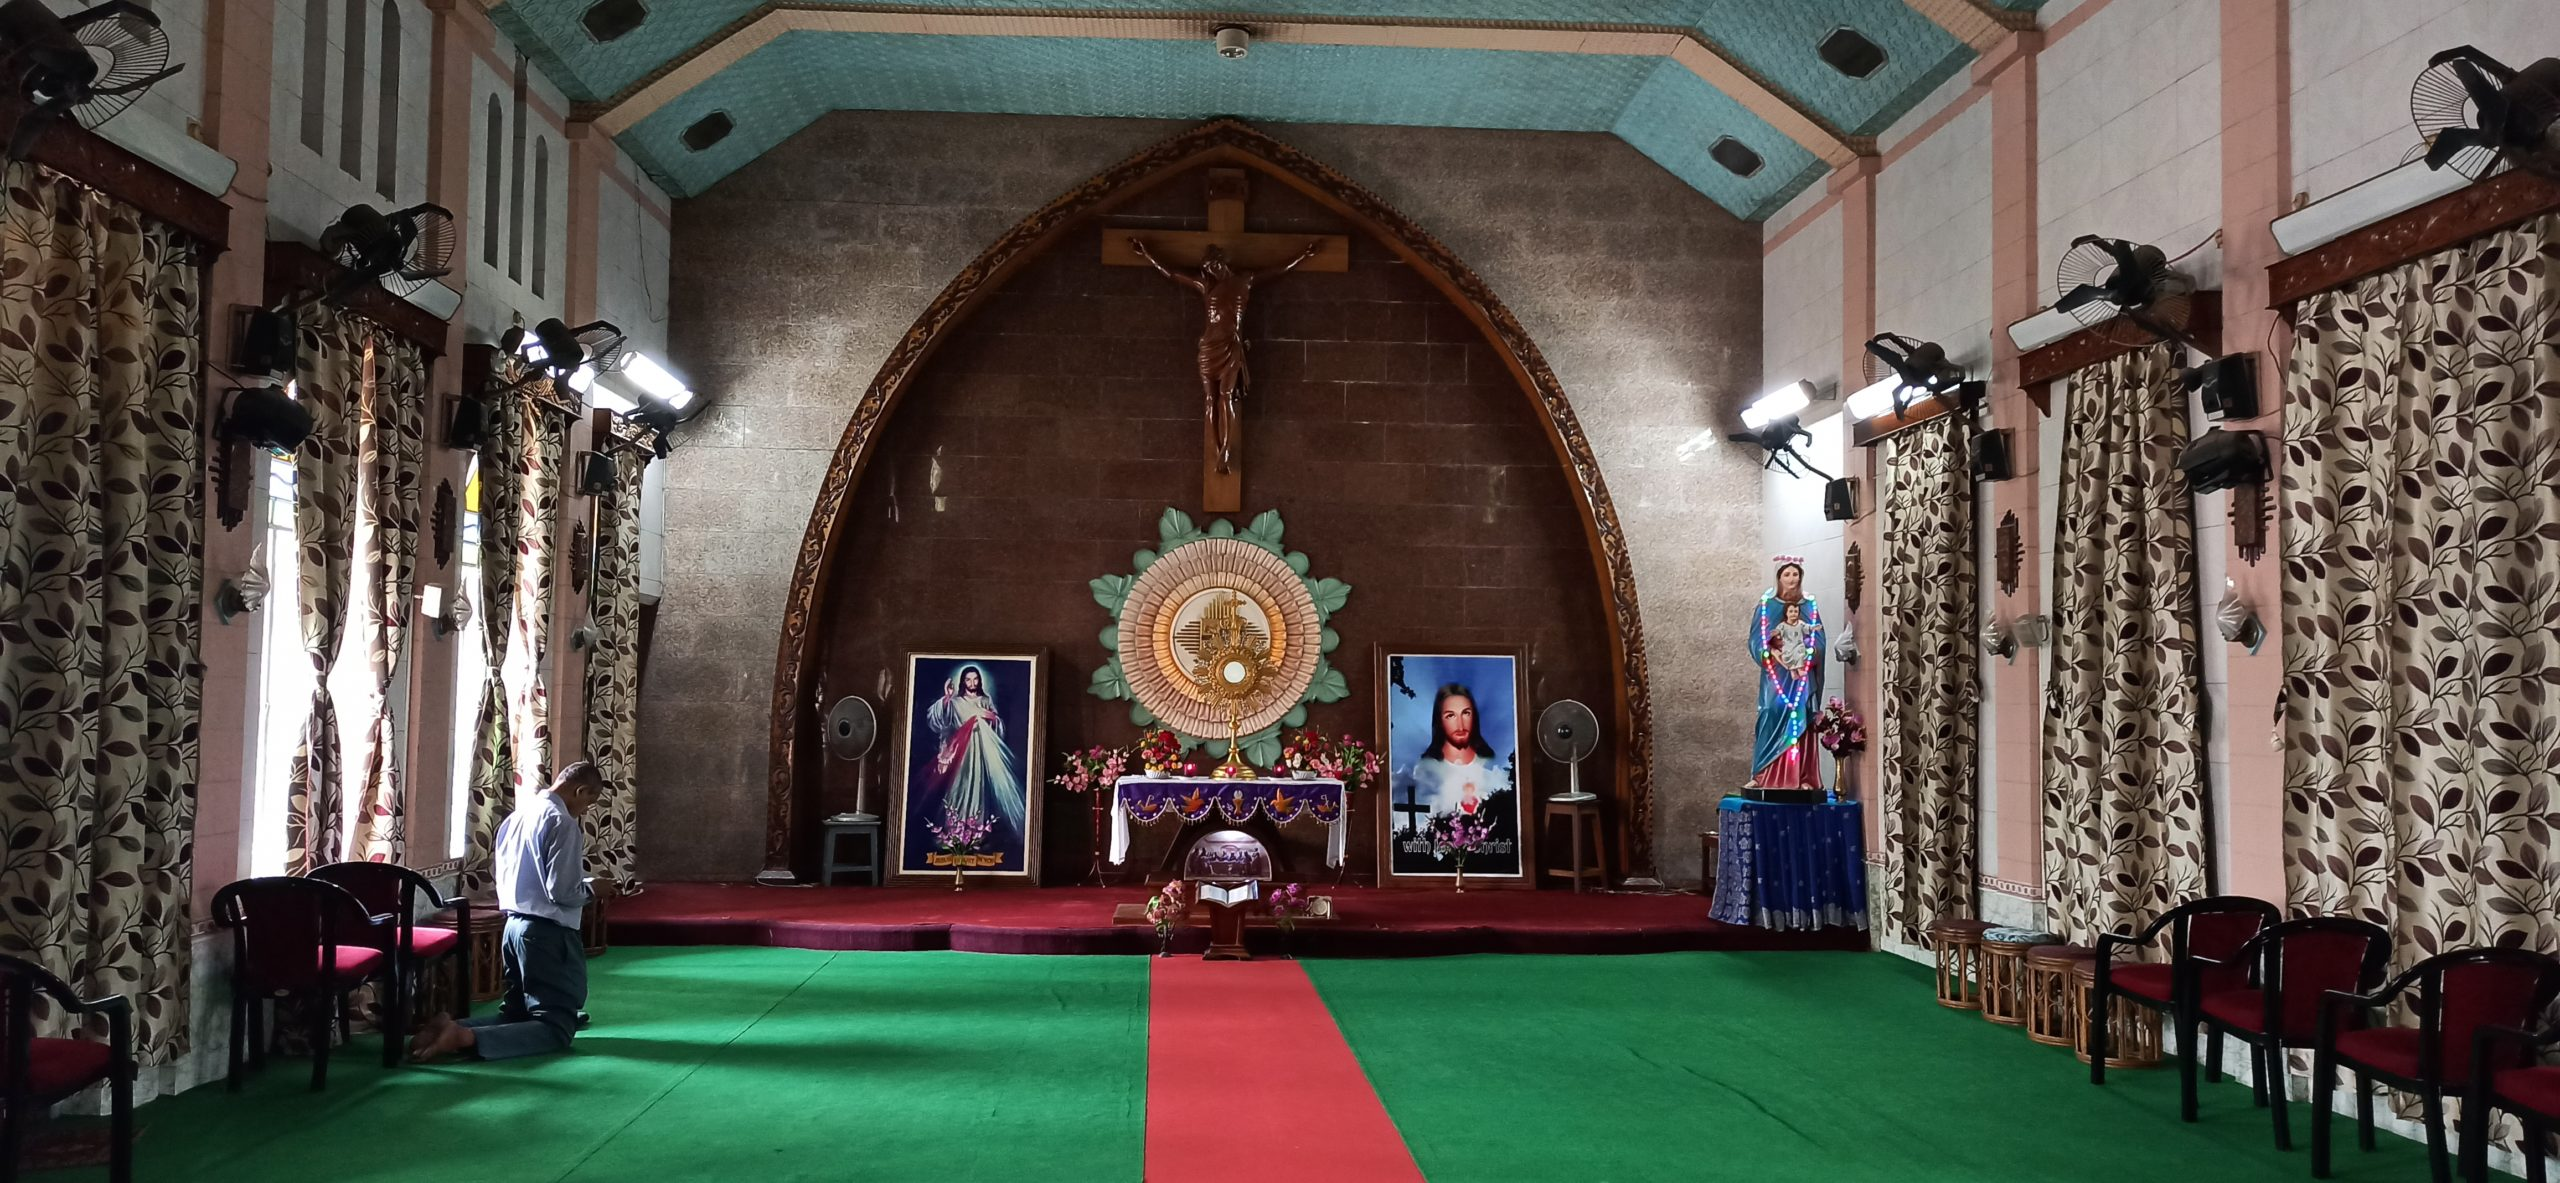 Bandel Church- Basilica of the Most Holy Rosary